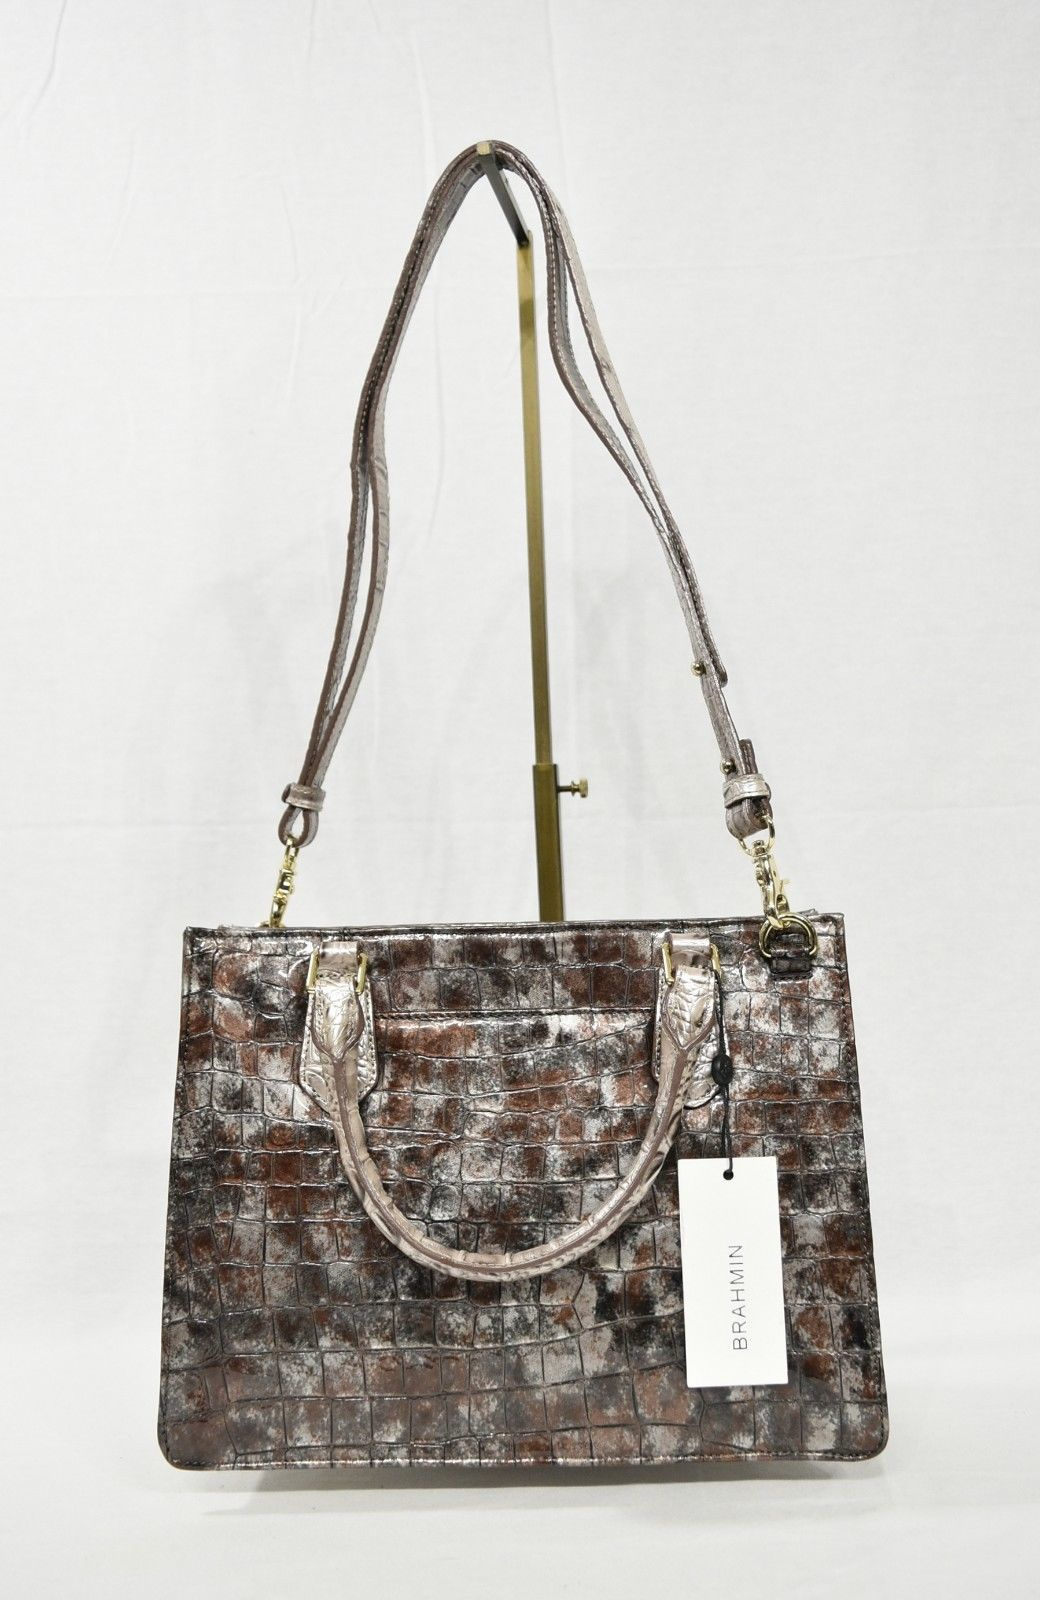 NWT Brahmin Small Camille Leather Satchel/Shoulder Bag in Brown Charente image 9